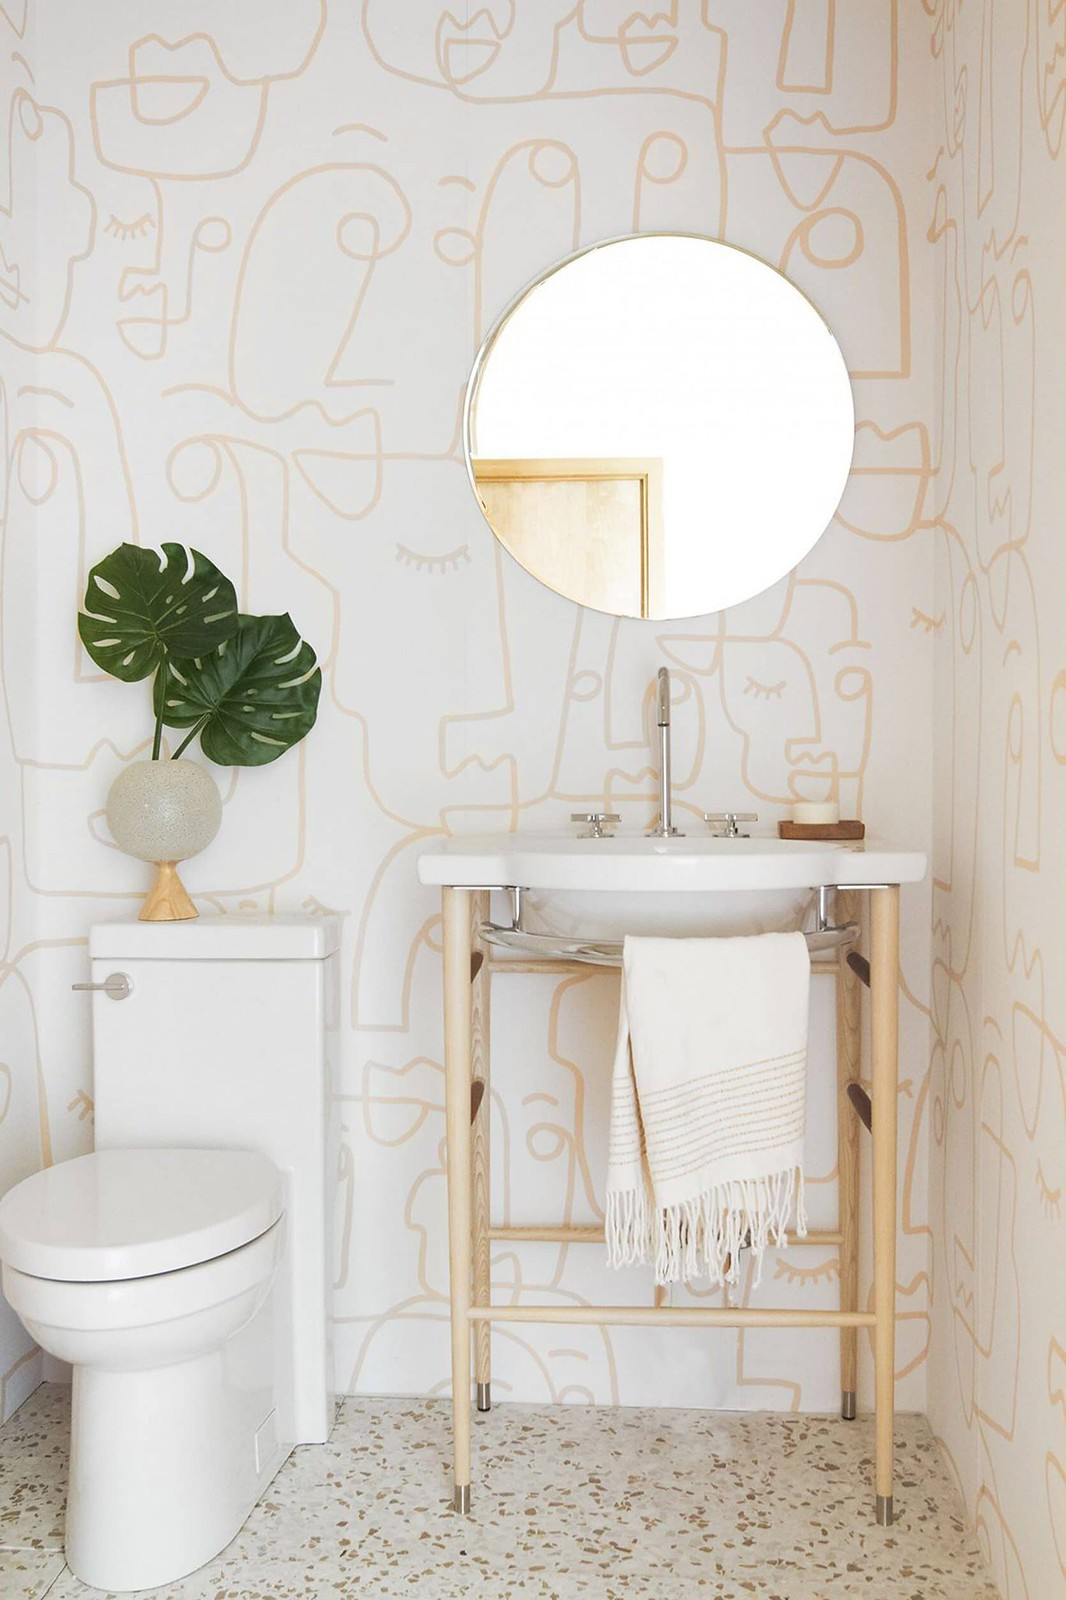 Subtle Muted Bathroom Wallpaper | Face Line Drawing Wallpaper | Pale Pink White Bathroom Inspiration | Light Airy Powder Room